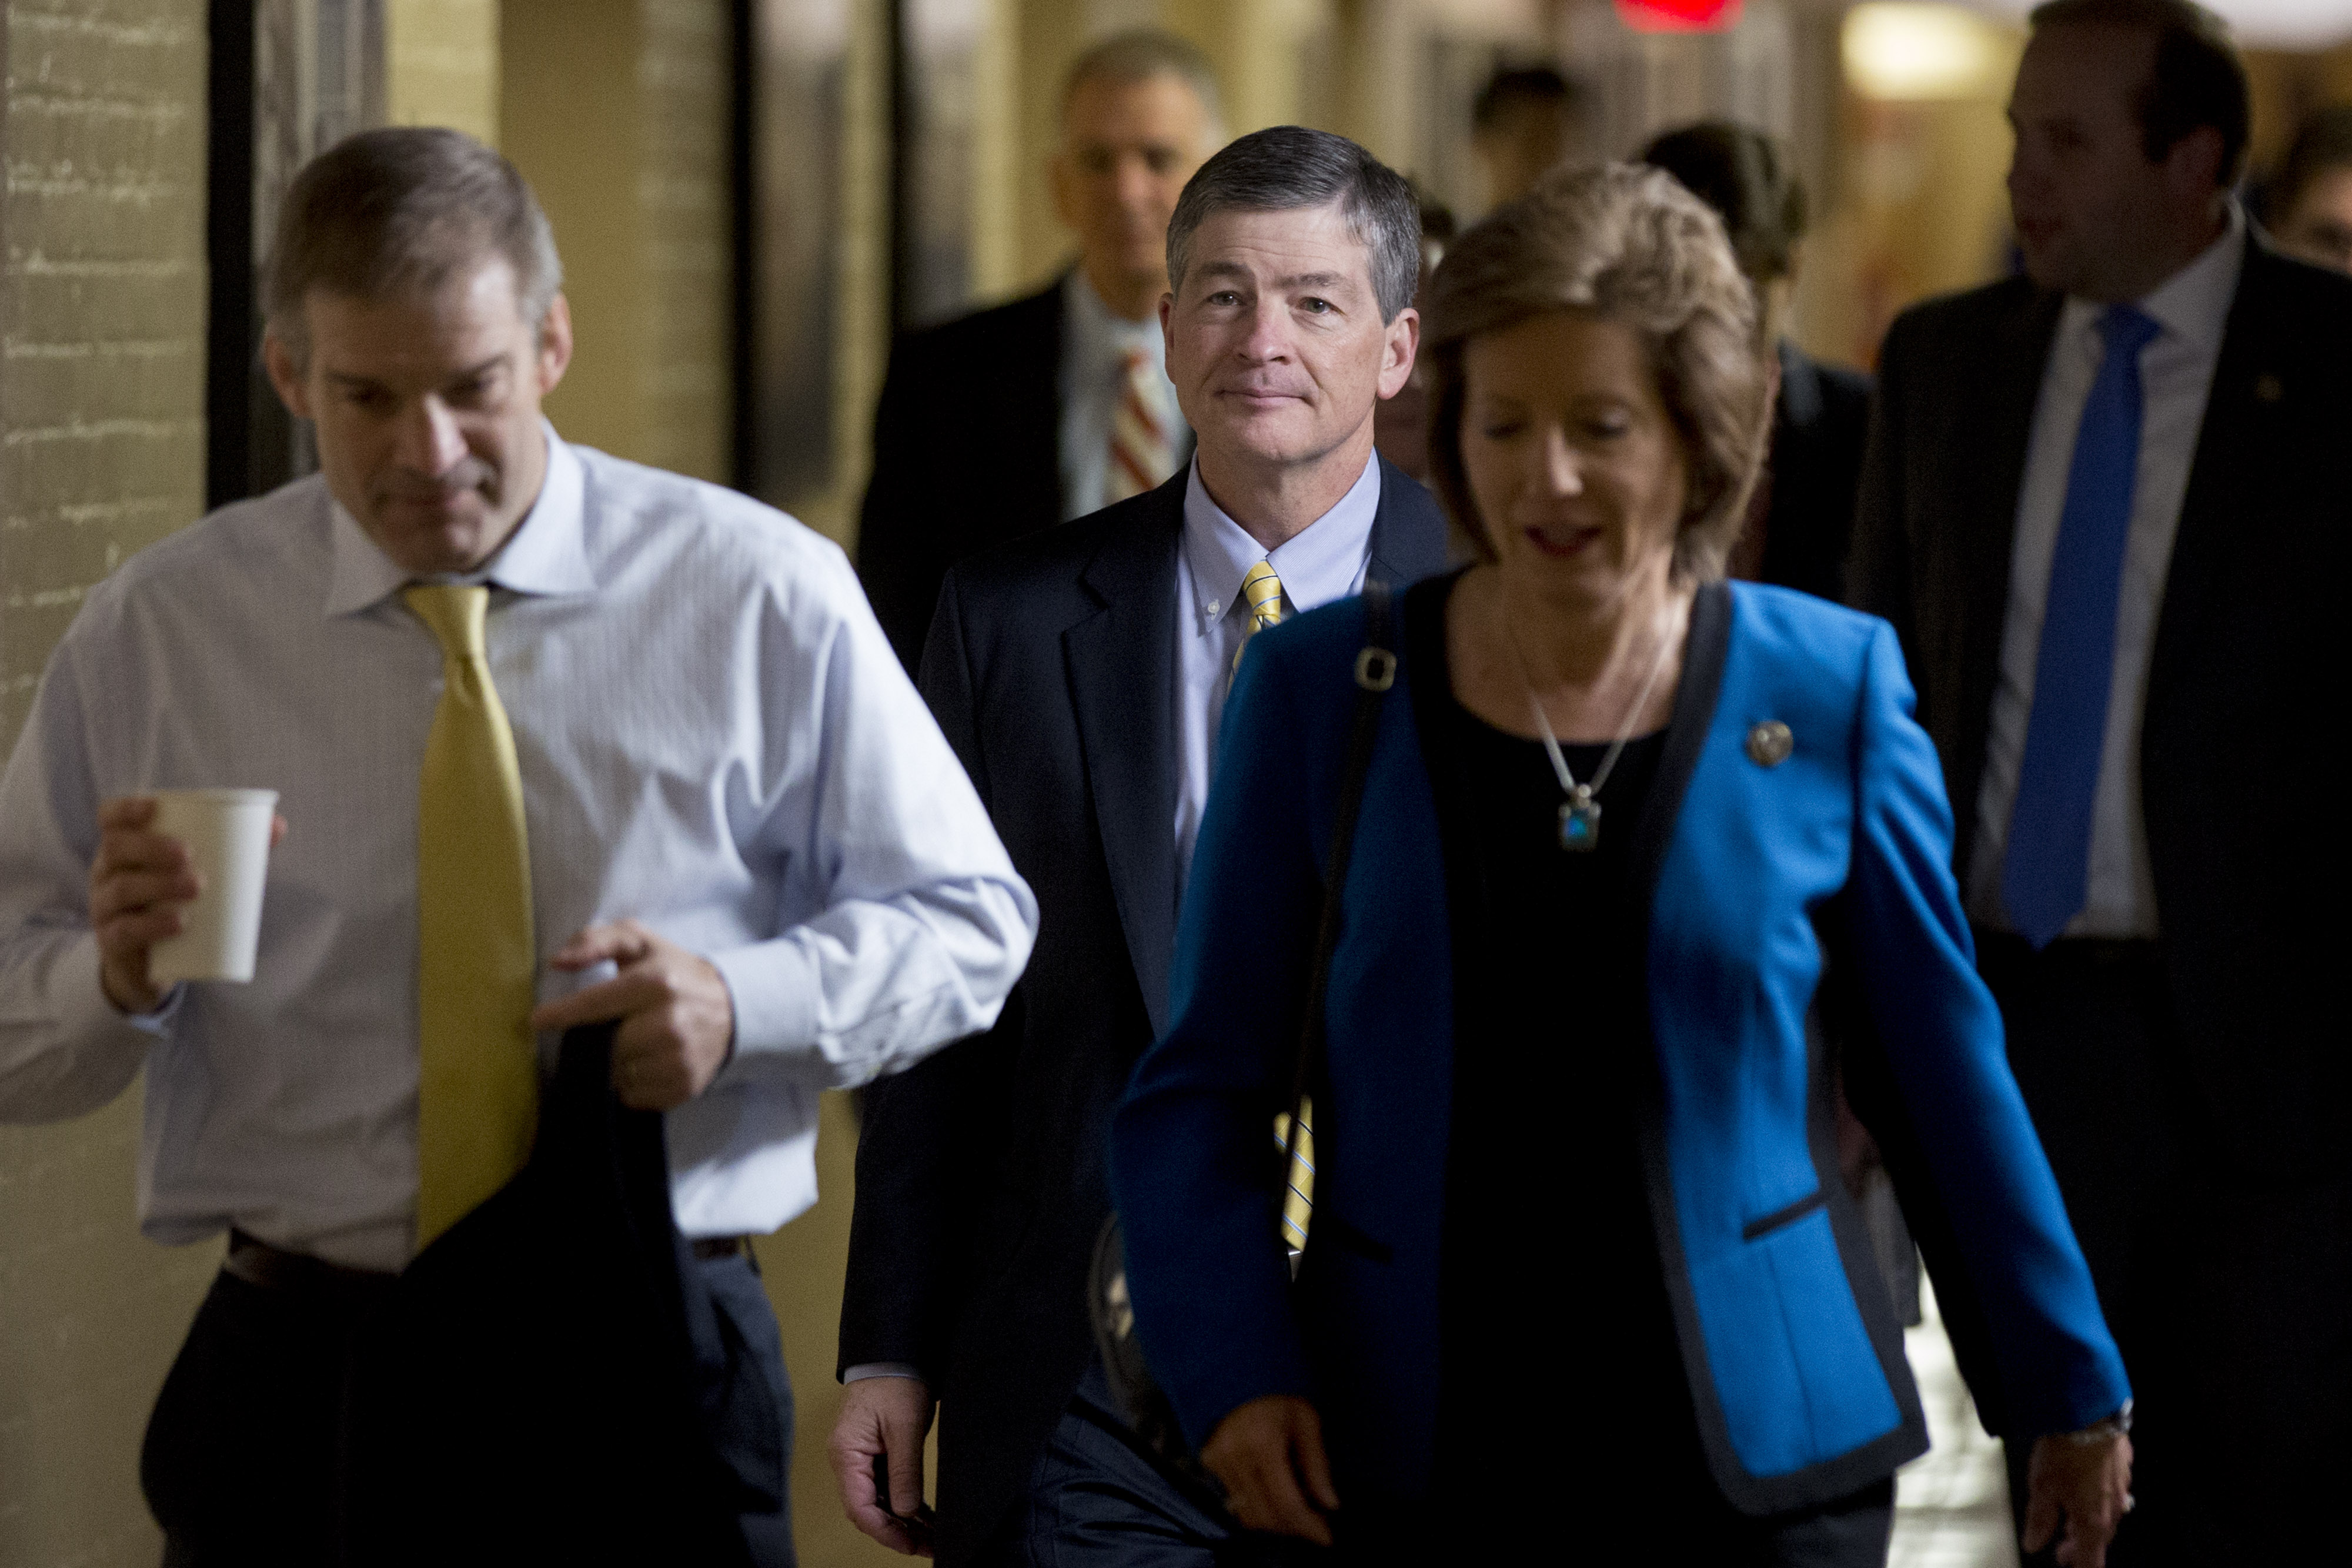 Rep. Jeb Hensarling (R-Texas) and chairman of the House Financial Services Committee, center, walks to a House Republican conference meeting at the U.S. Capitol in Washington, D.C., U.S., on Thursday, May 4, 2017.